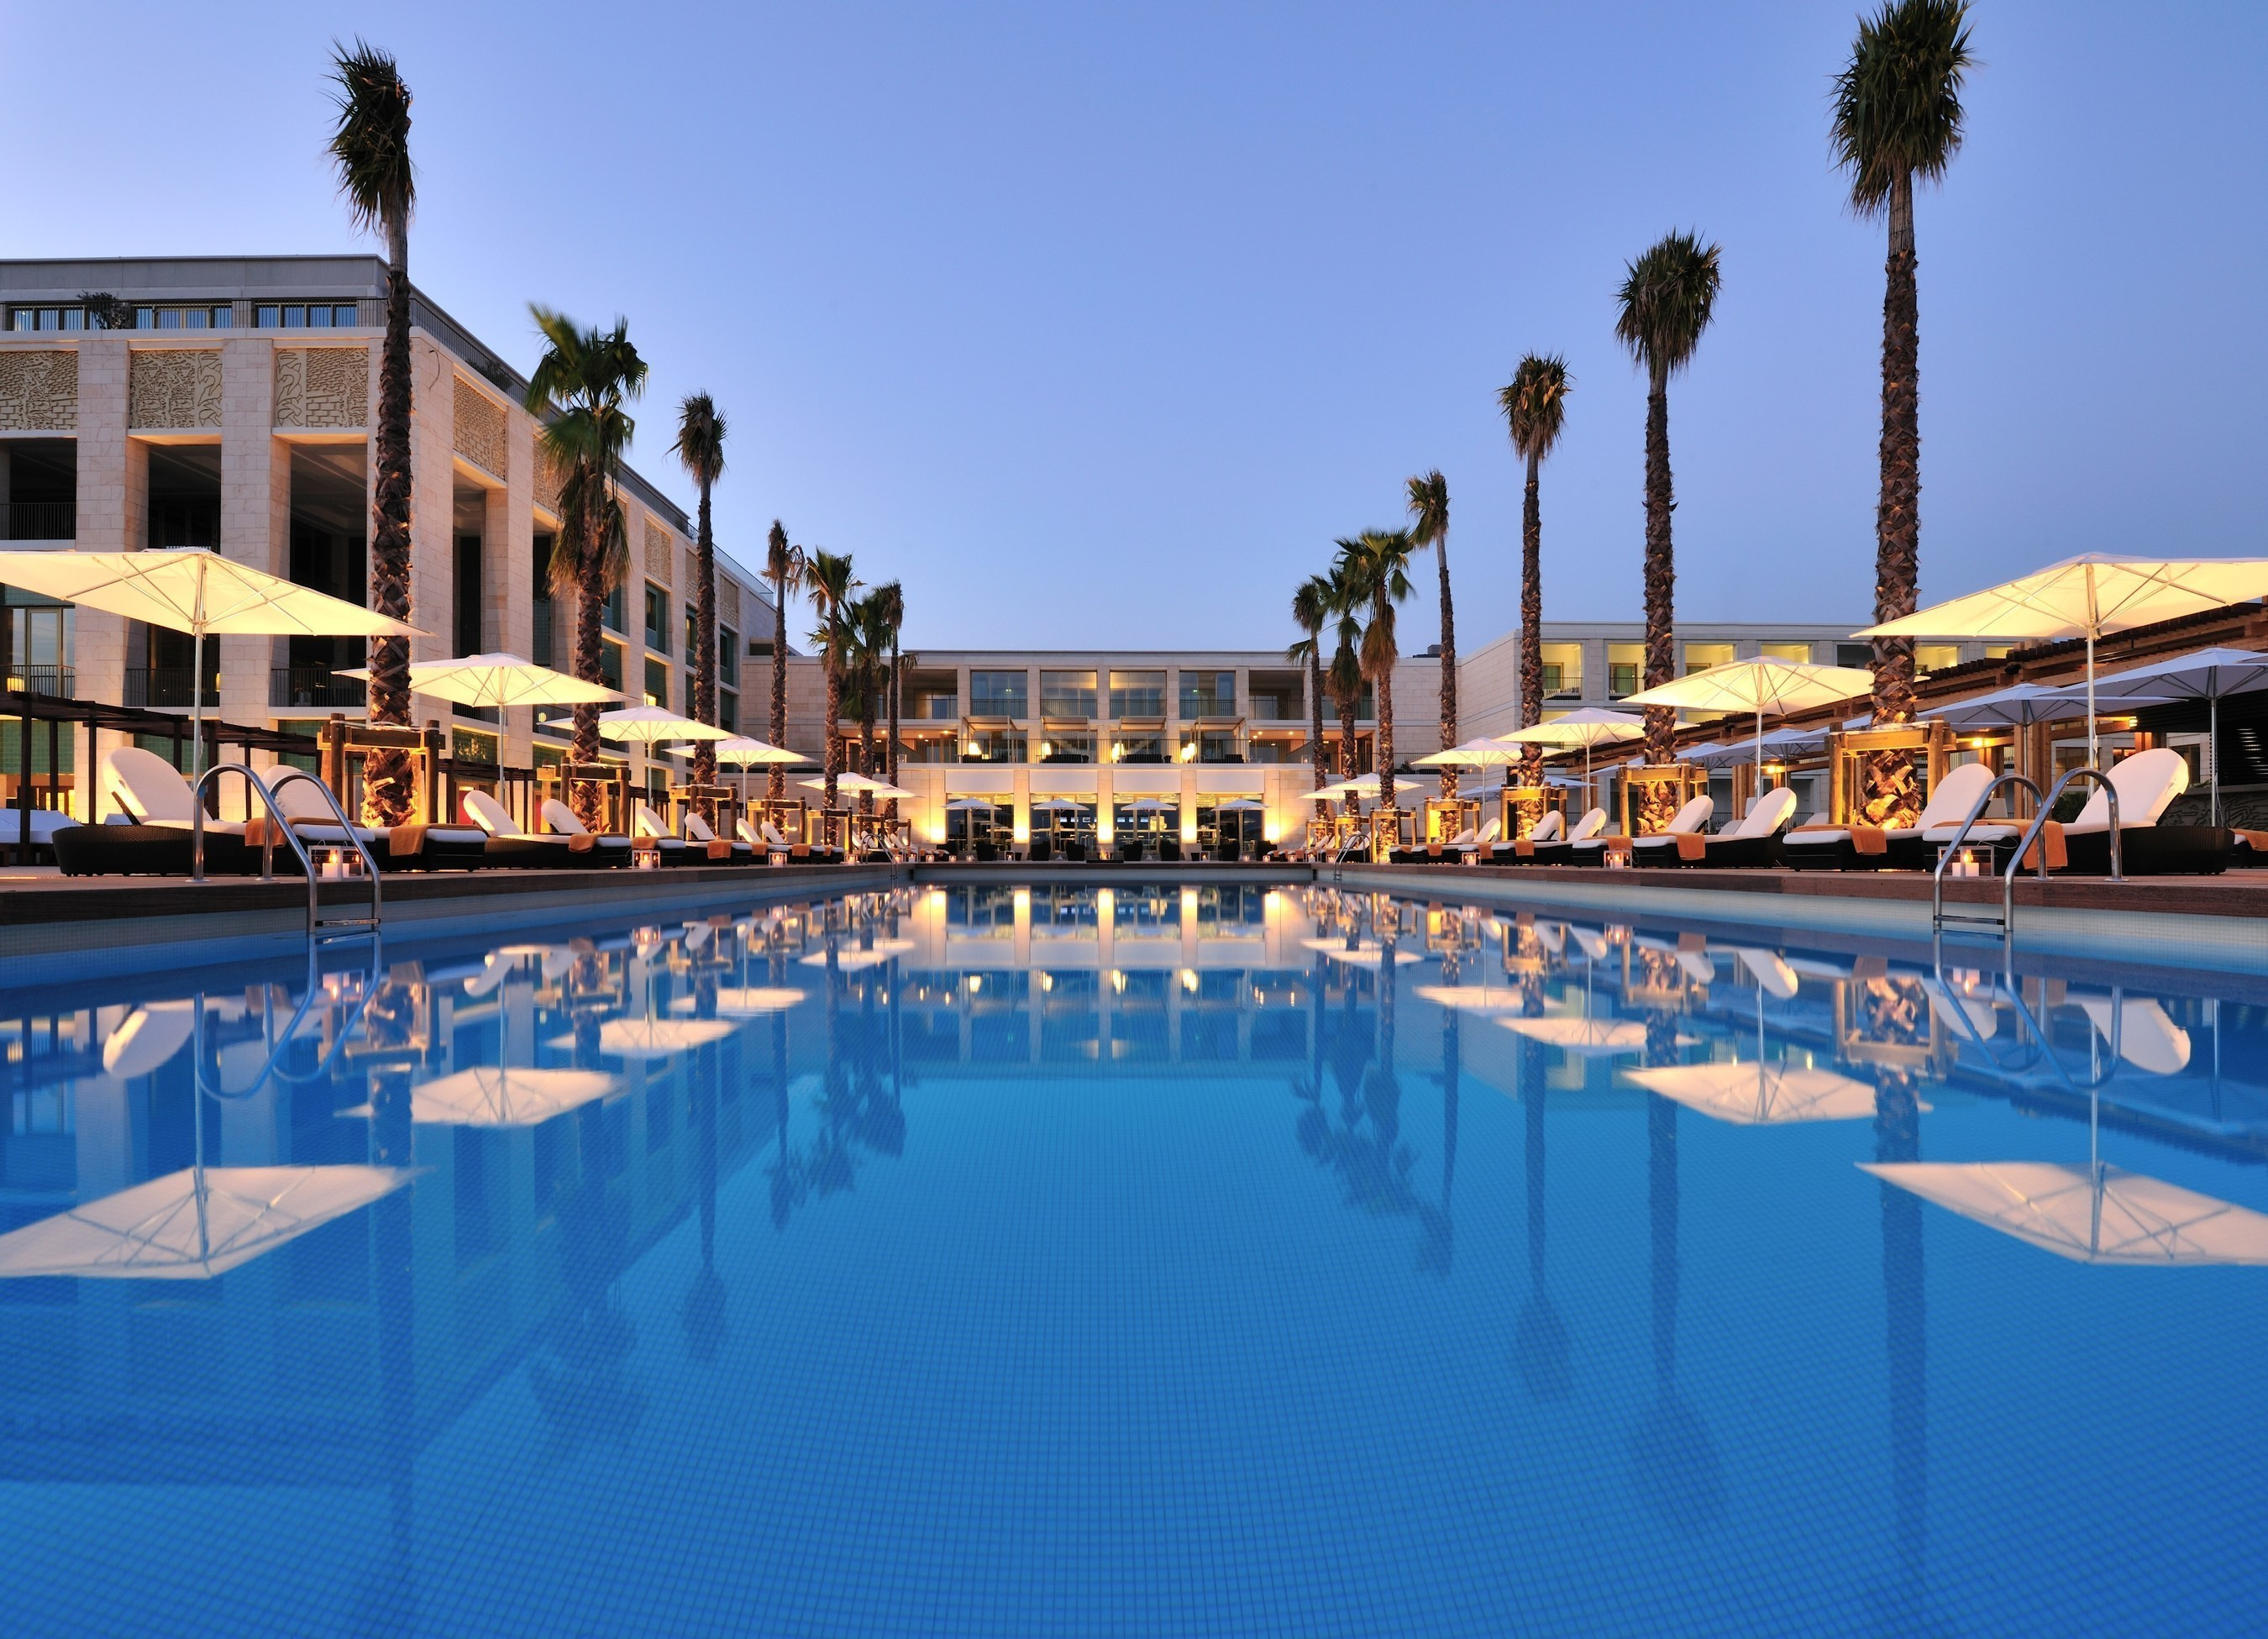 Tivoli Hotels In The Algarve Minor Hotel Group Completes Largest Ever Hospitality Deal